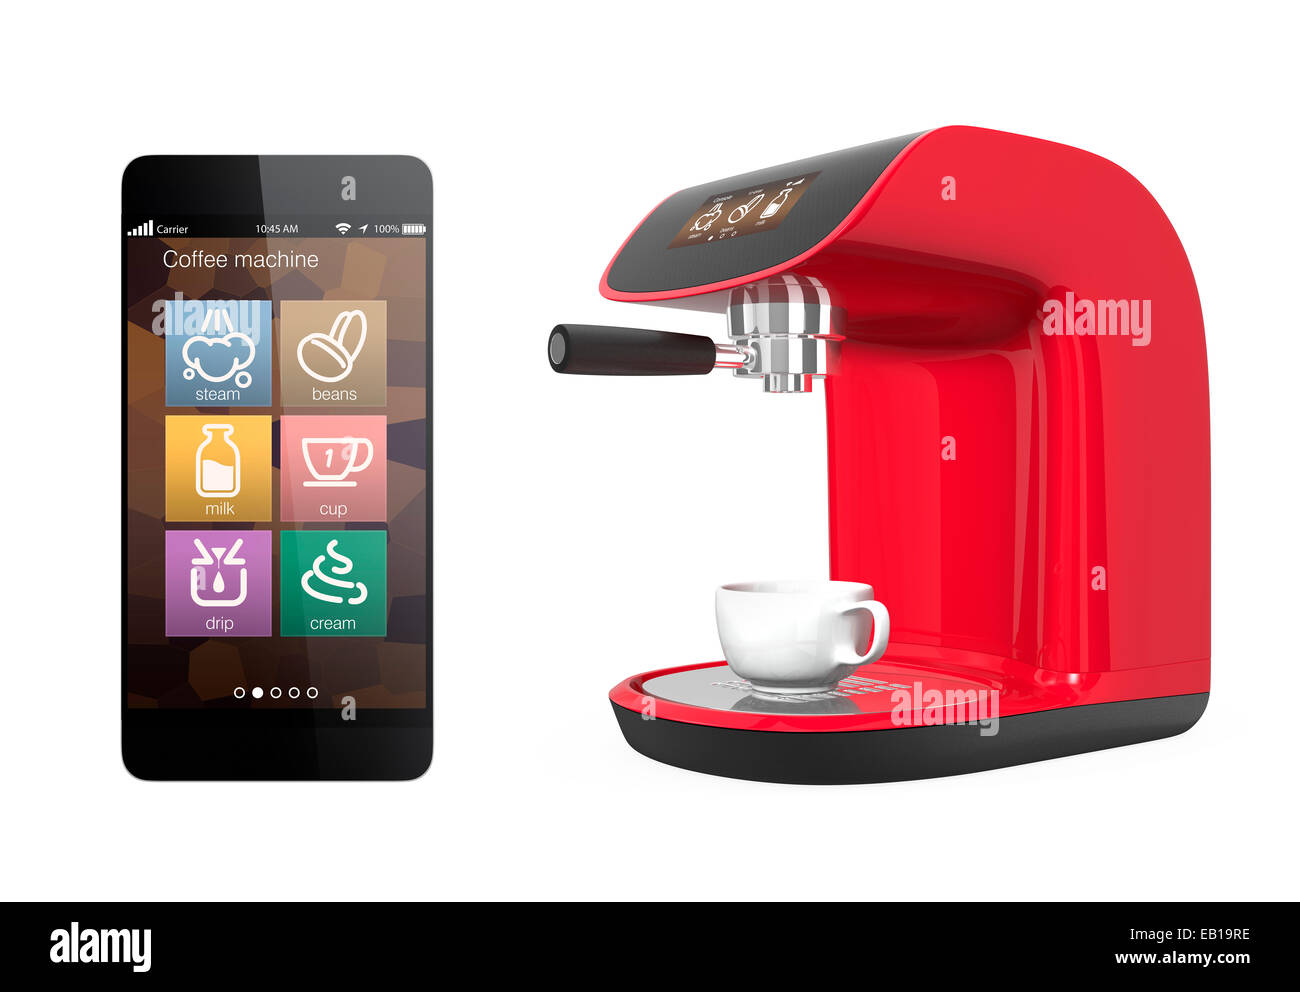 Stylish coffee machines with touch screen. control by smartphone. Stock Photo